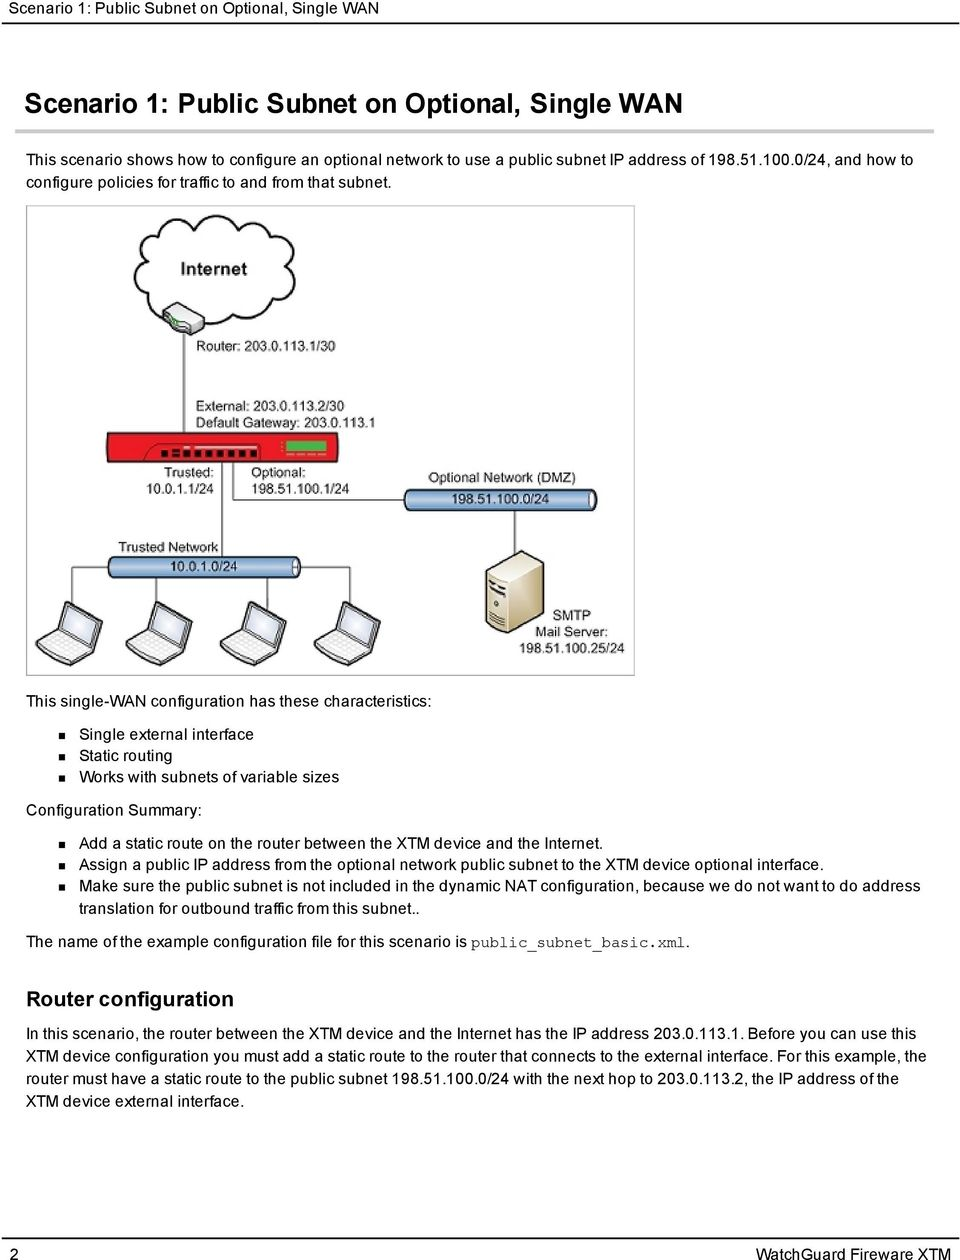 This single-wan configuration has these characteristics: Single external interface Static routing Works with subnets of variable sizes Configuration Summary: Add a static route on the router between